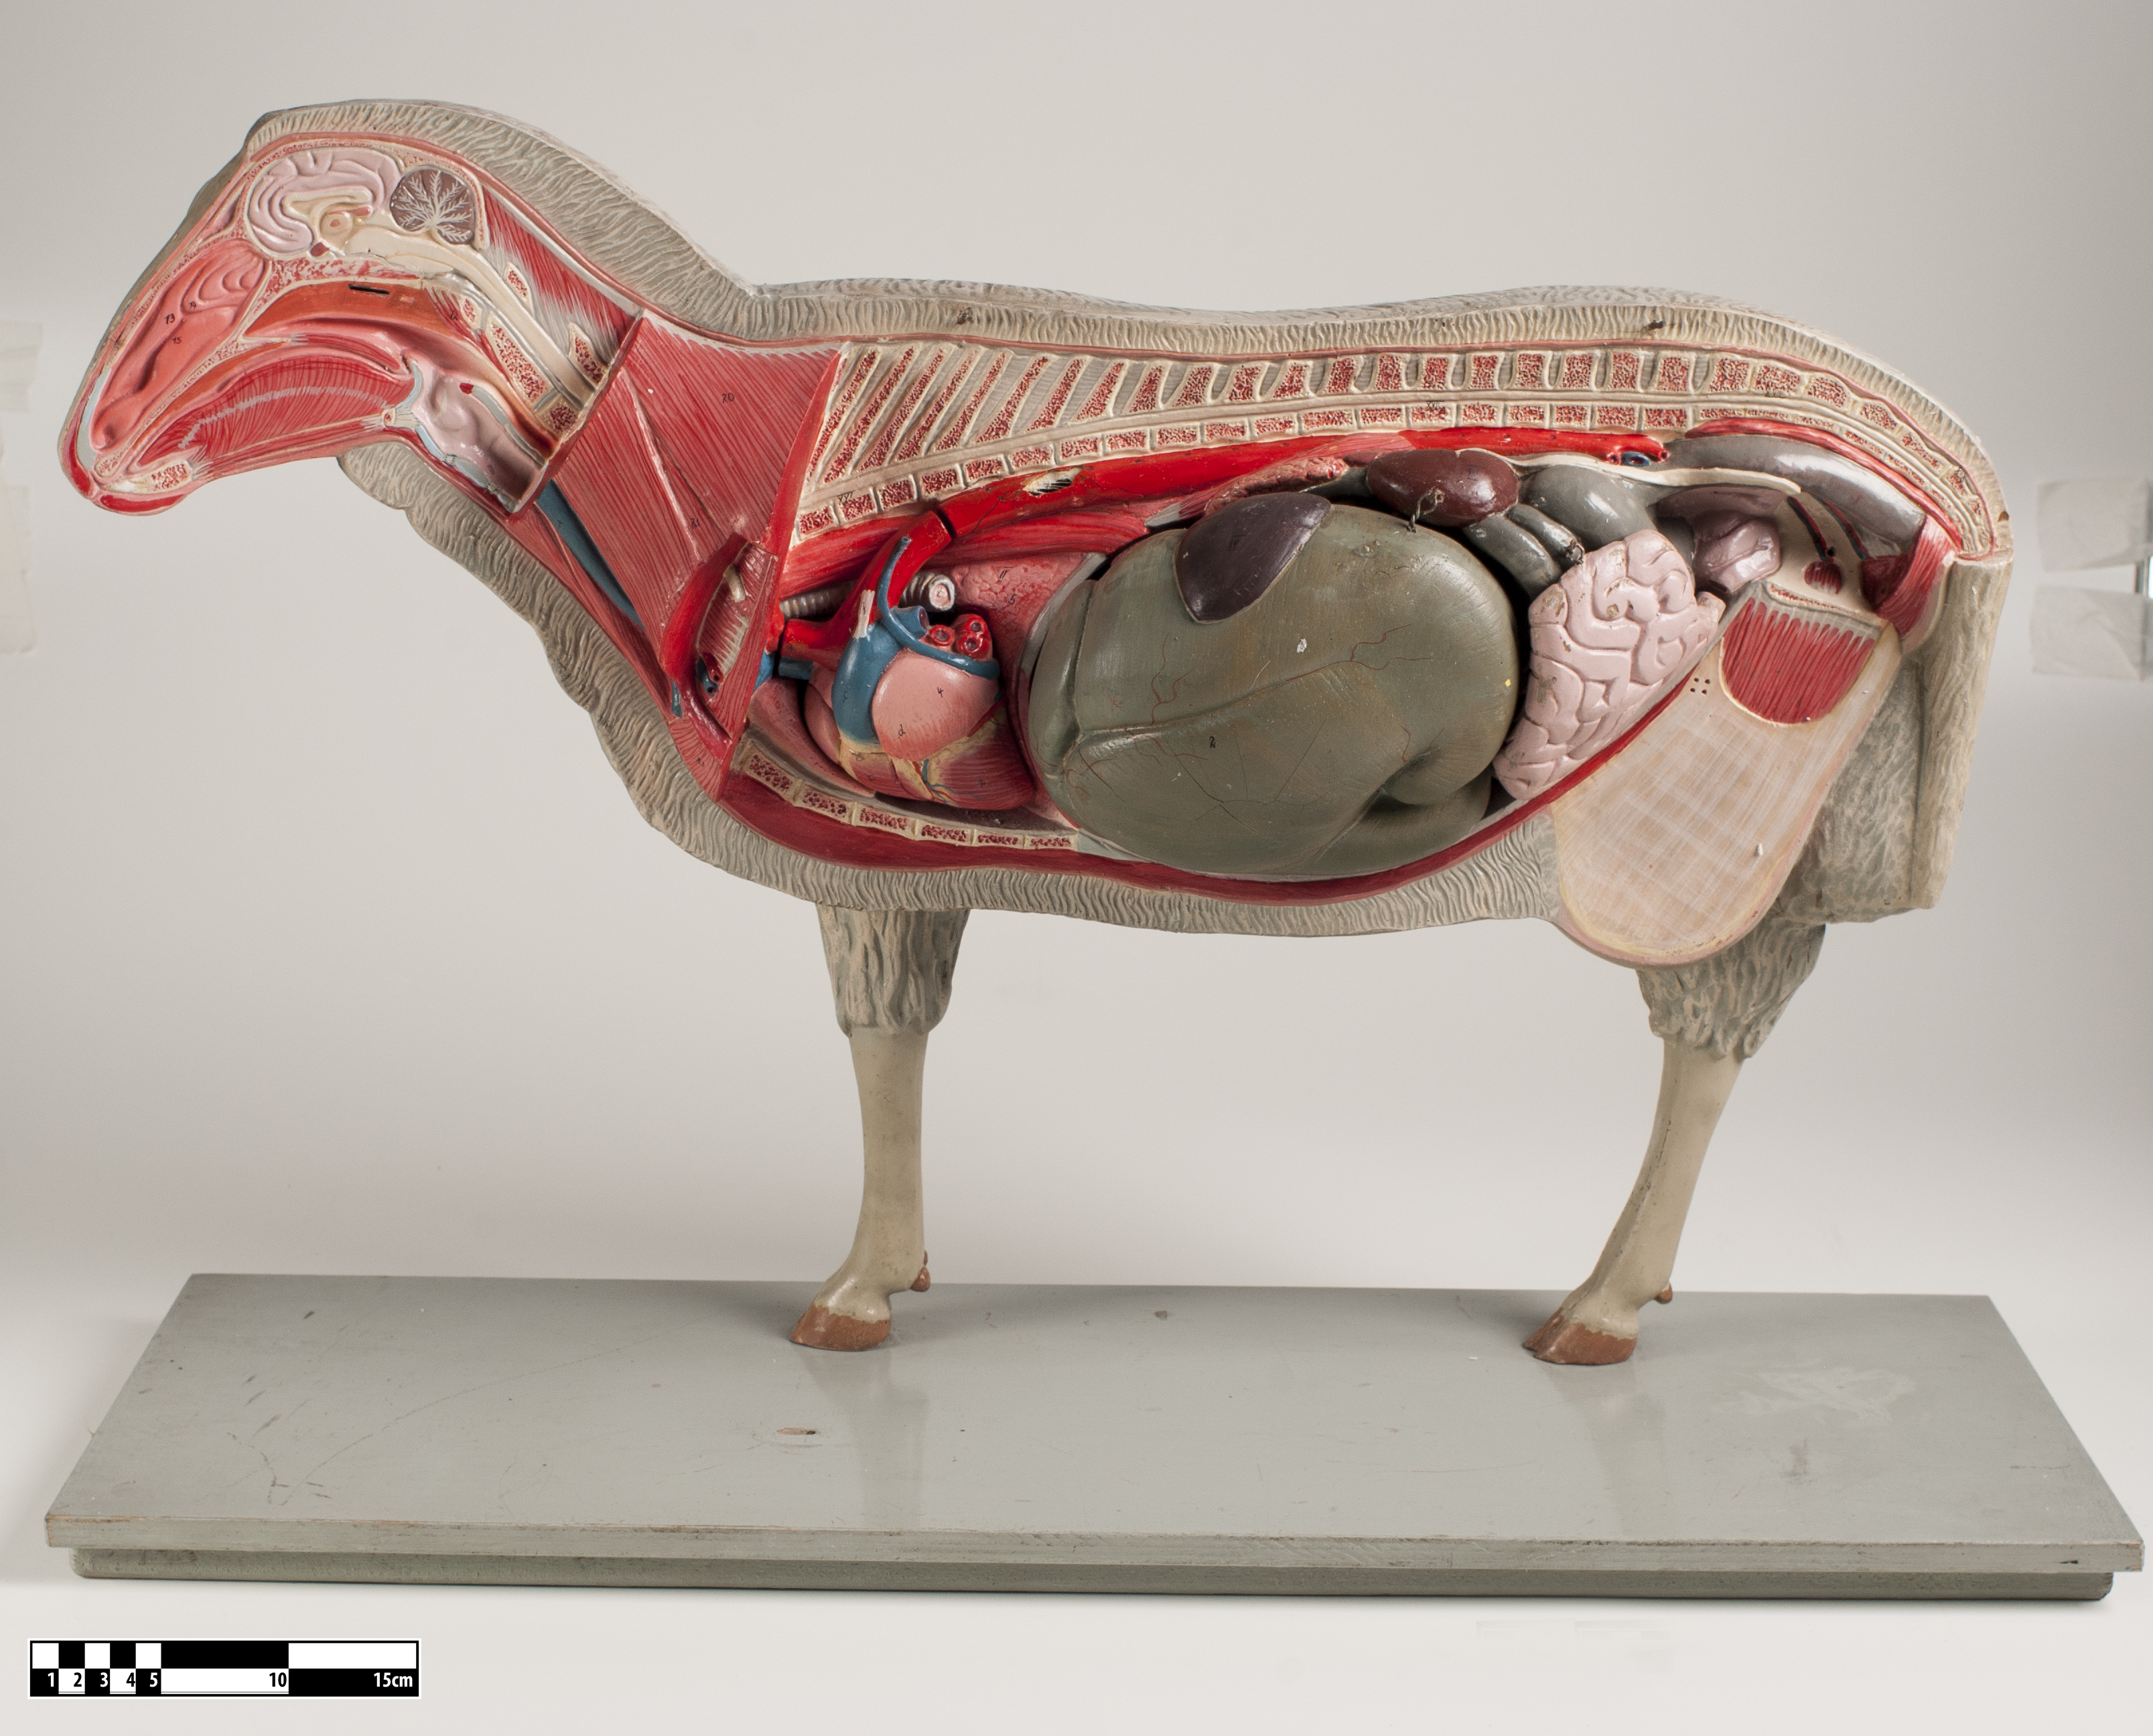 Filedidactic Model Of A Sheep 02 Fmvz Usp 30eg Wikimedia Commons